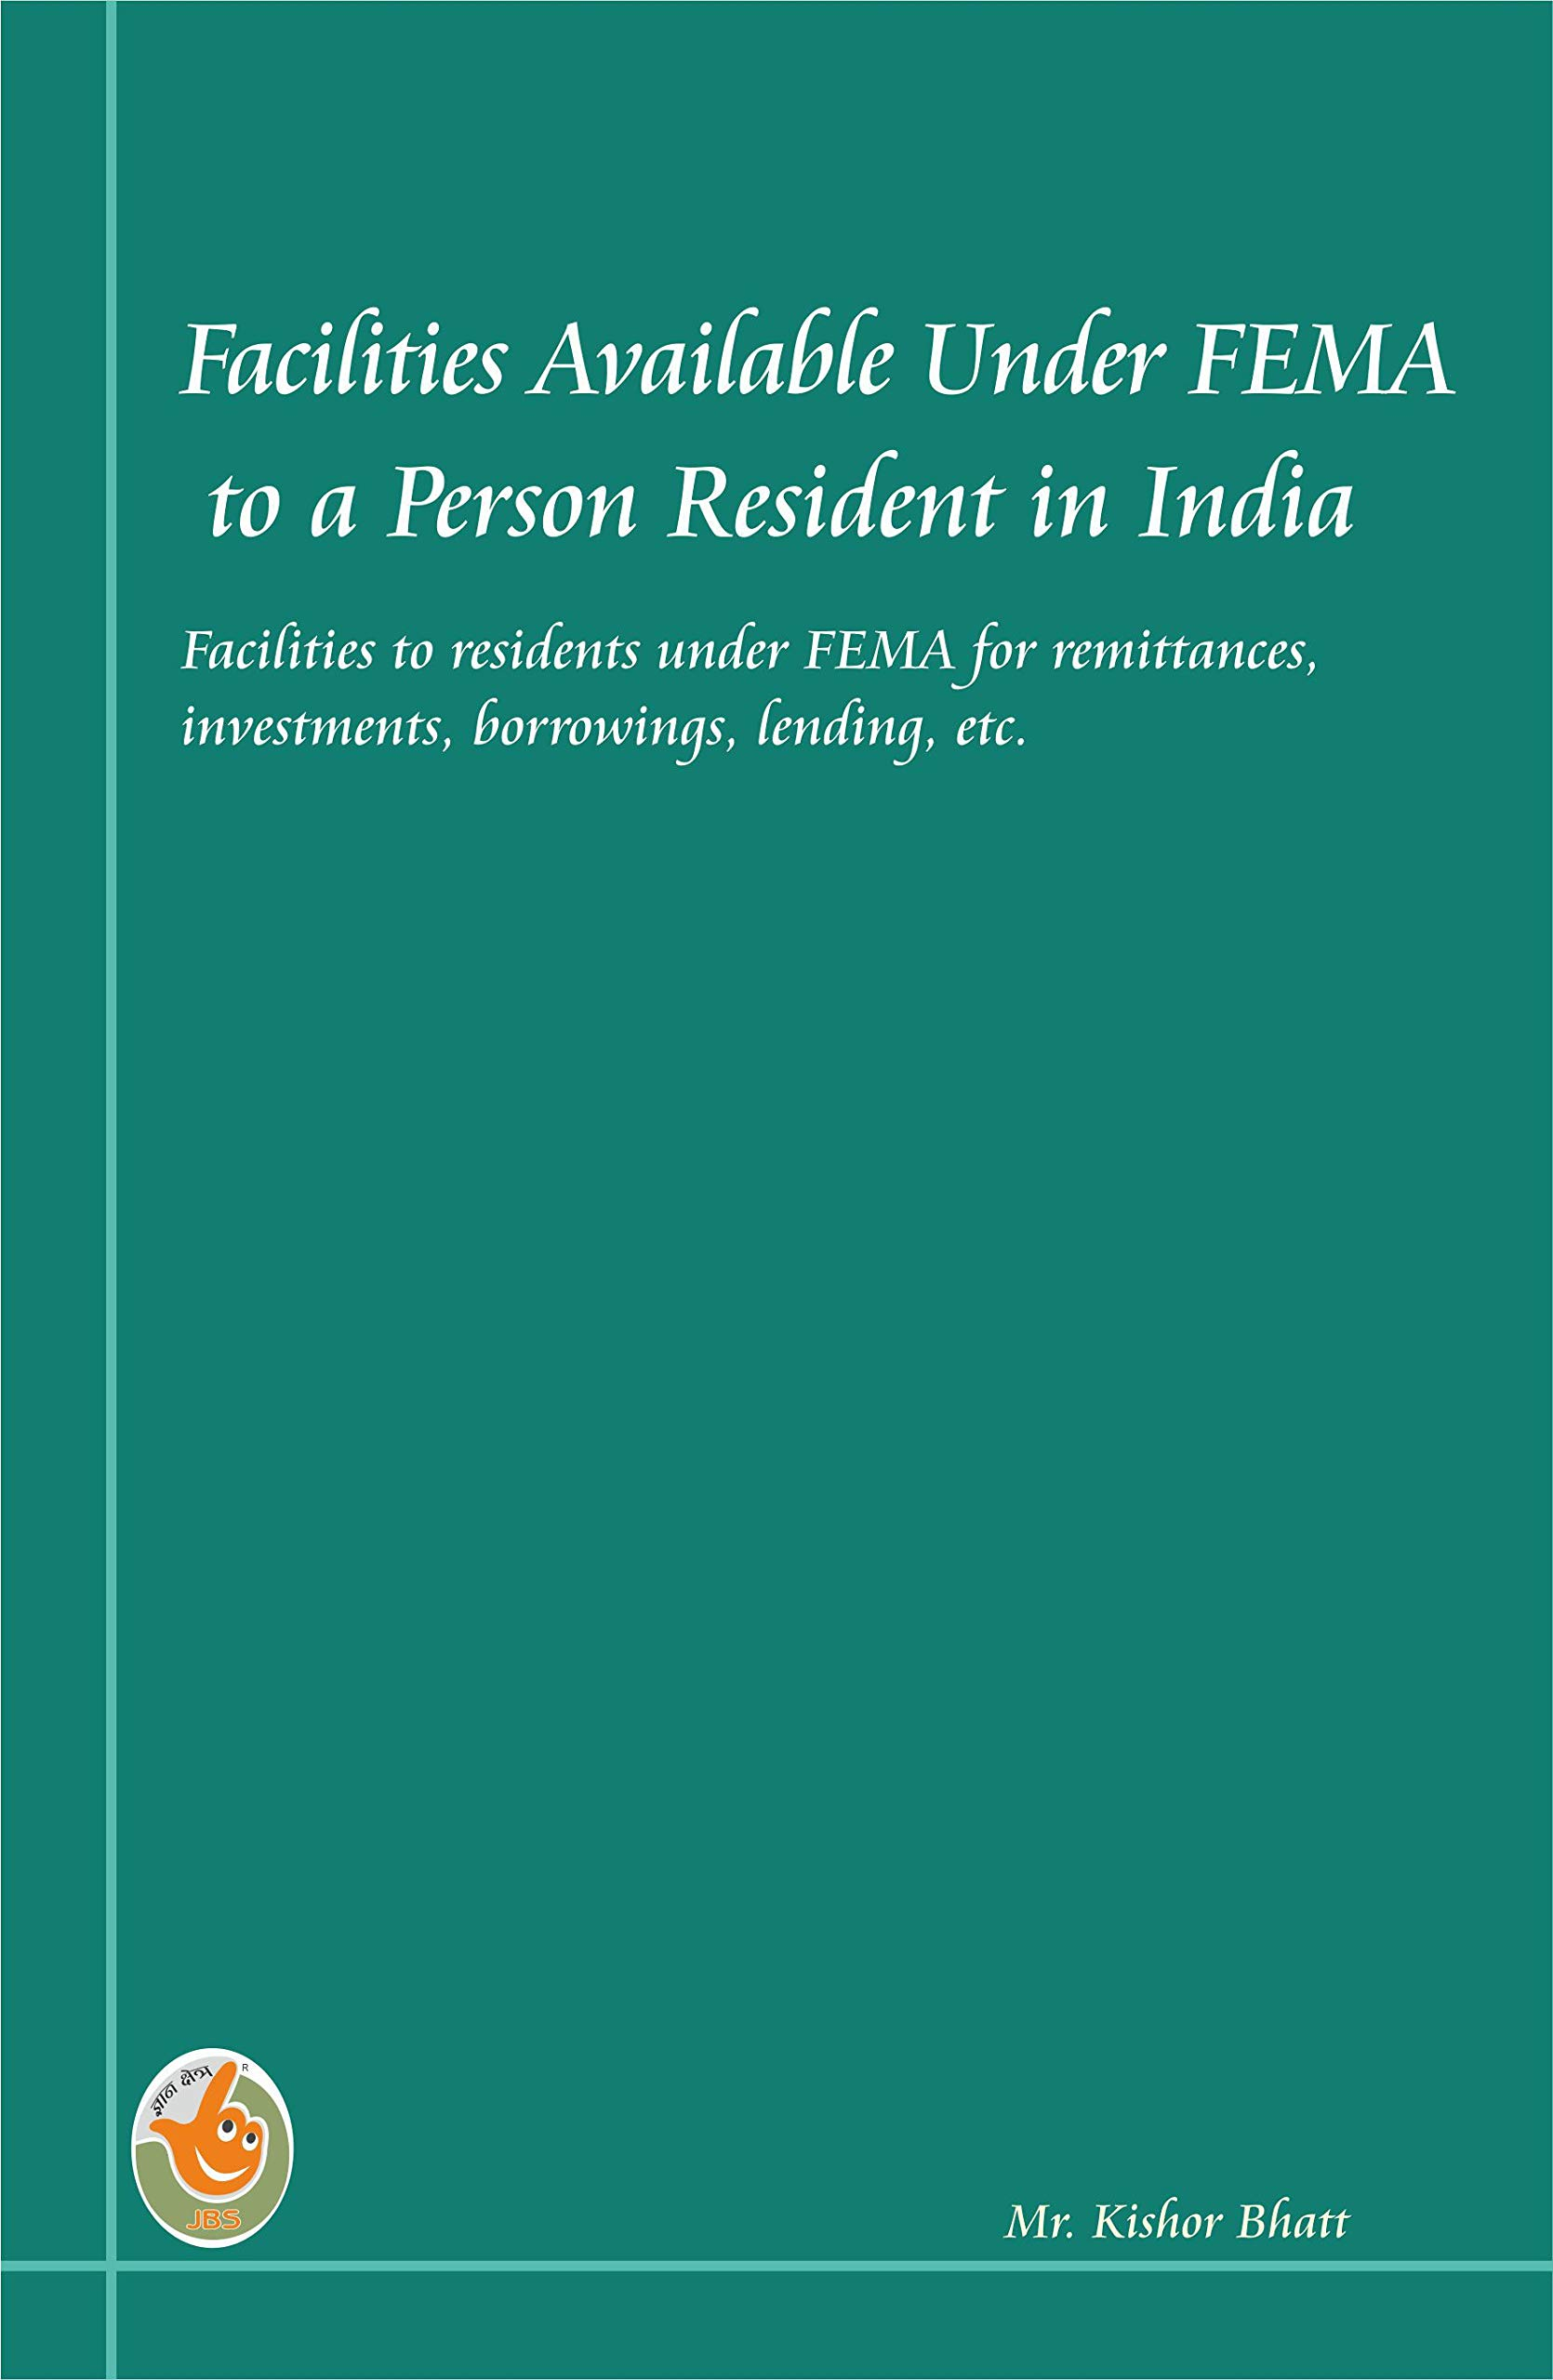 Facilities Available Under FEMA to a Person Residing in India: Facilities to residents under FEMA for remittances, investments, borrowings, lending, etc